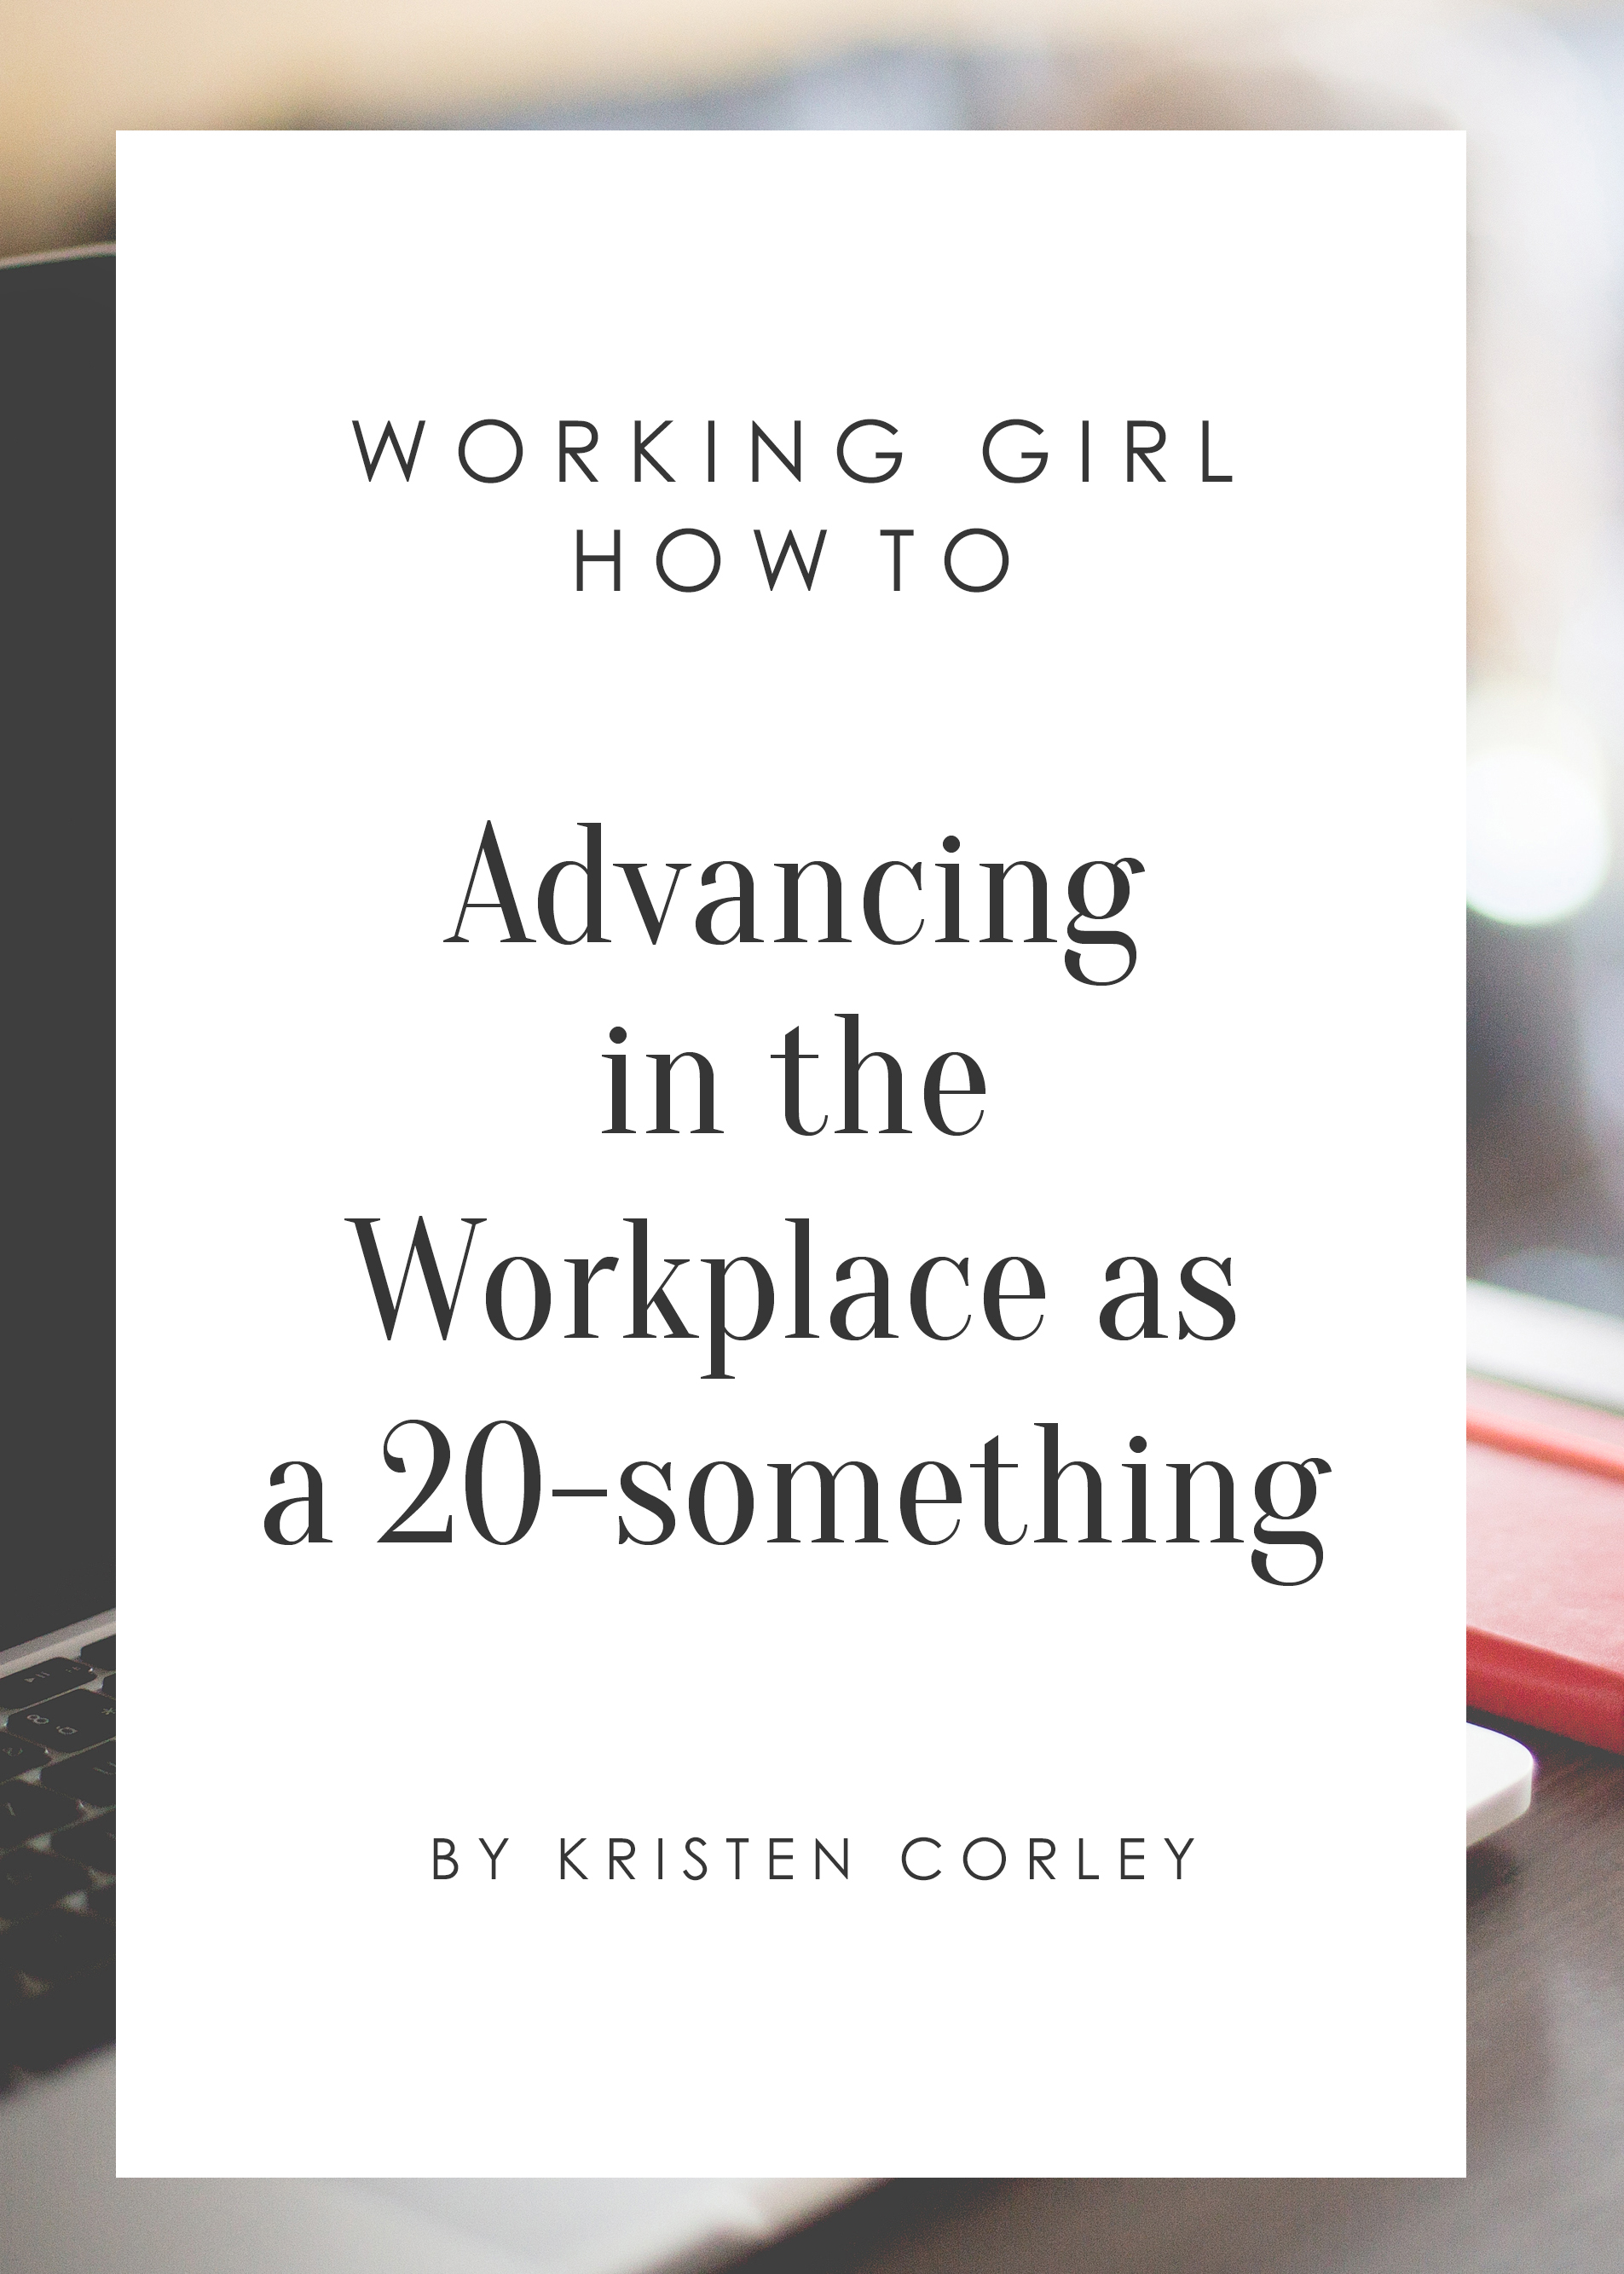 Working Girl How-To: Advancing in the Workplace as a 20-Something